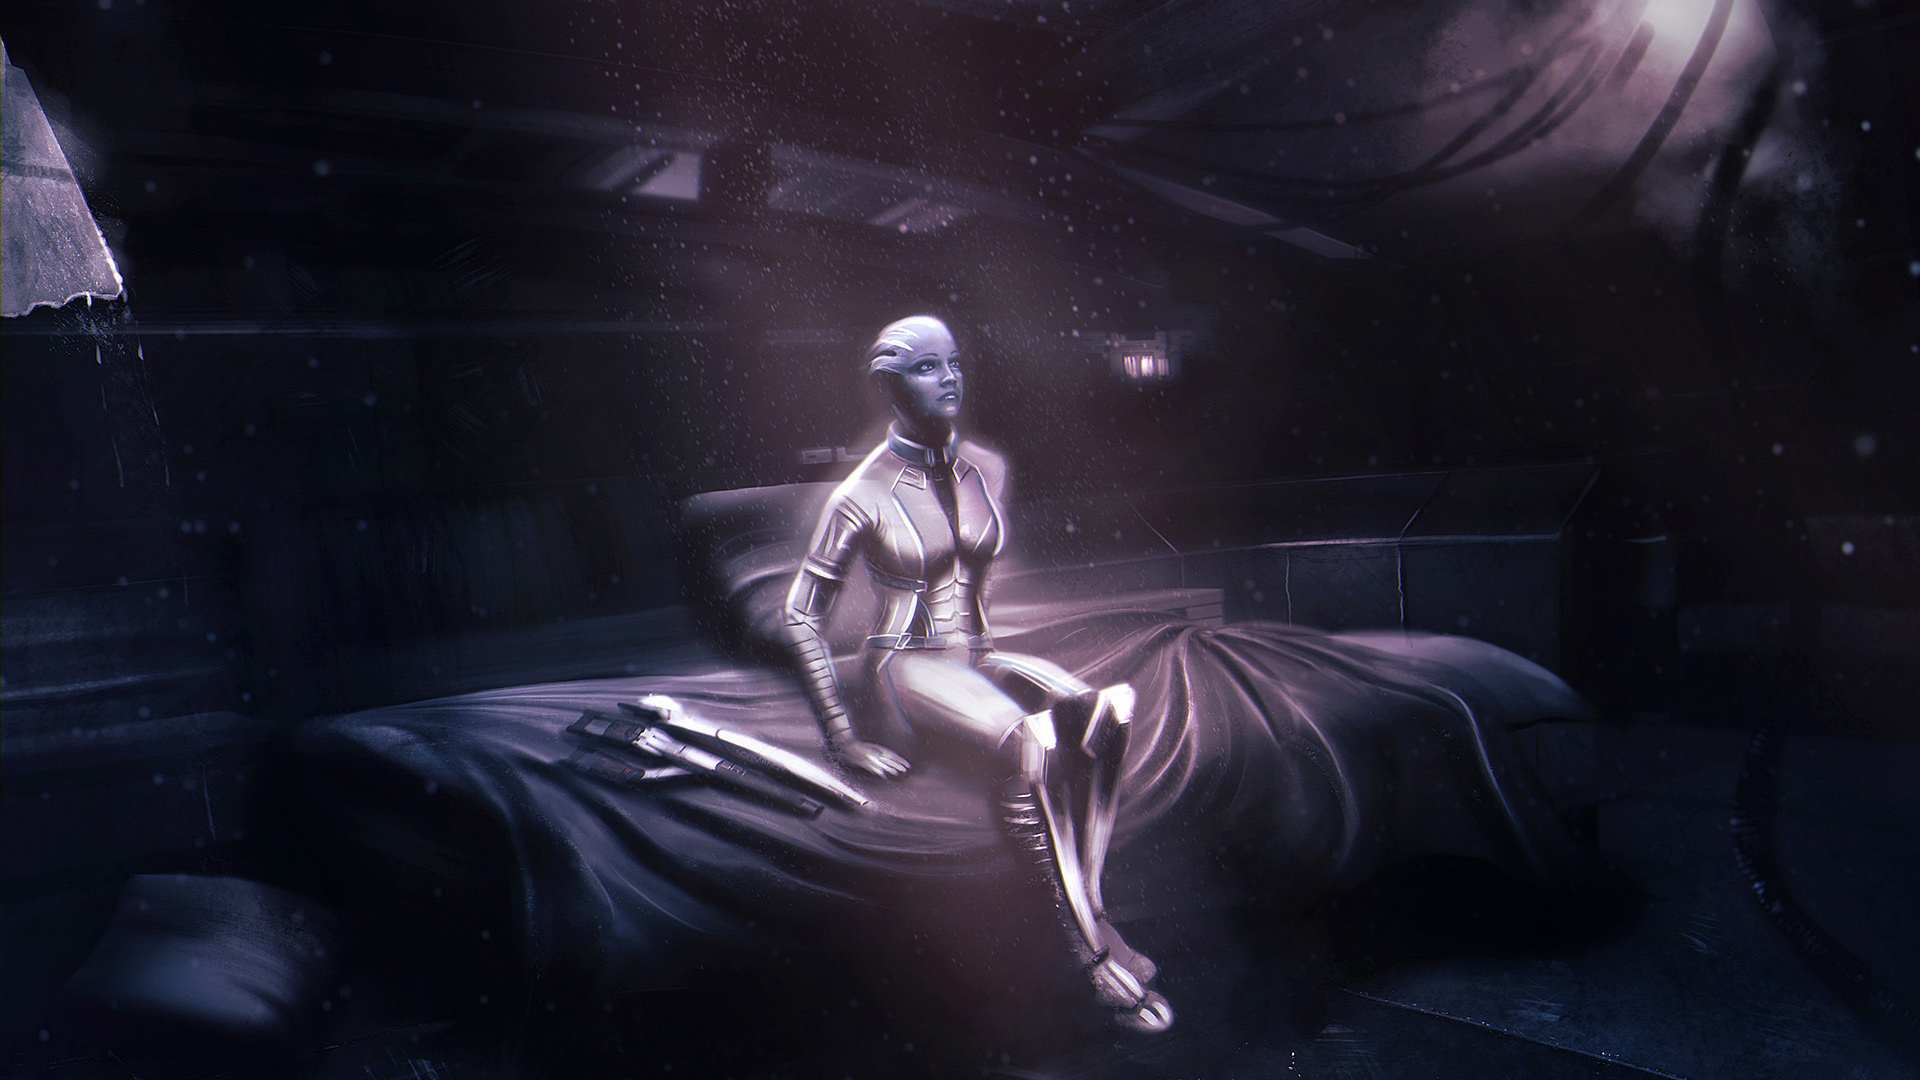 Download Wallpaper Mass Effect Normandy Cabin Asari